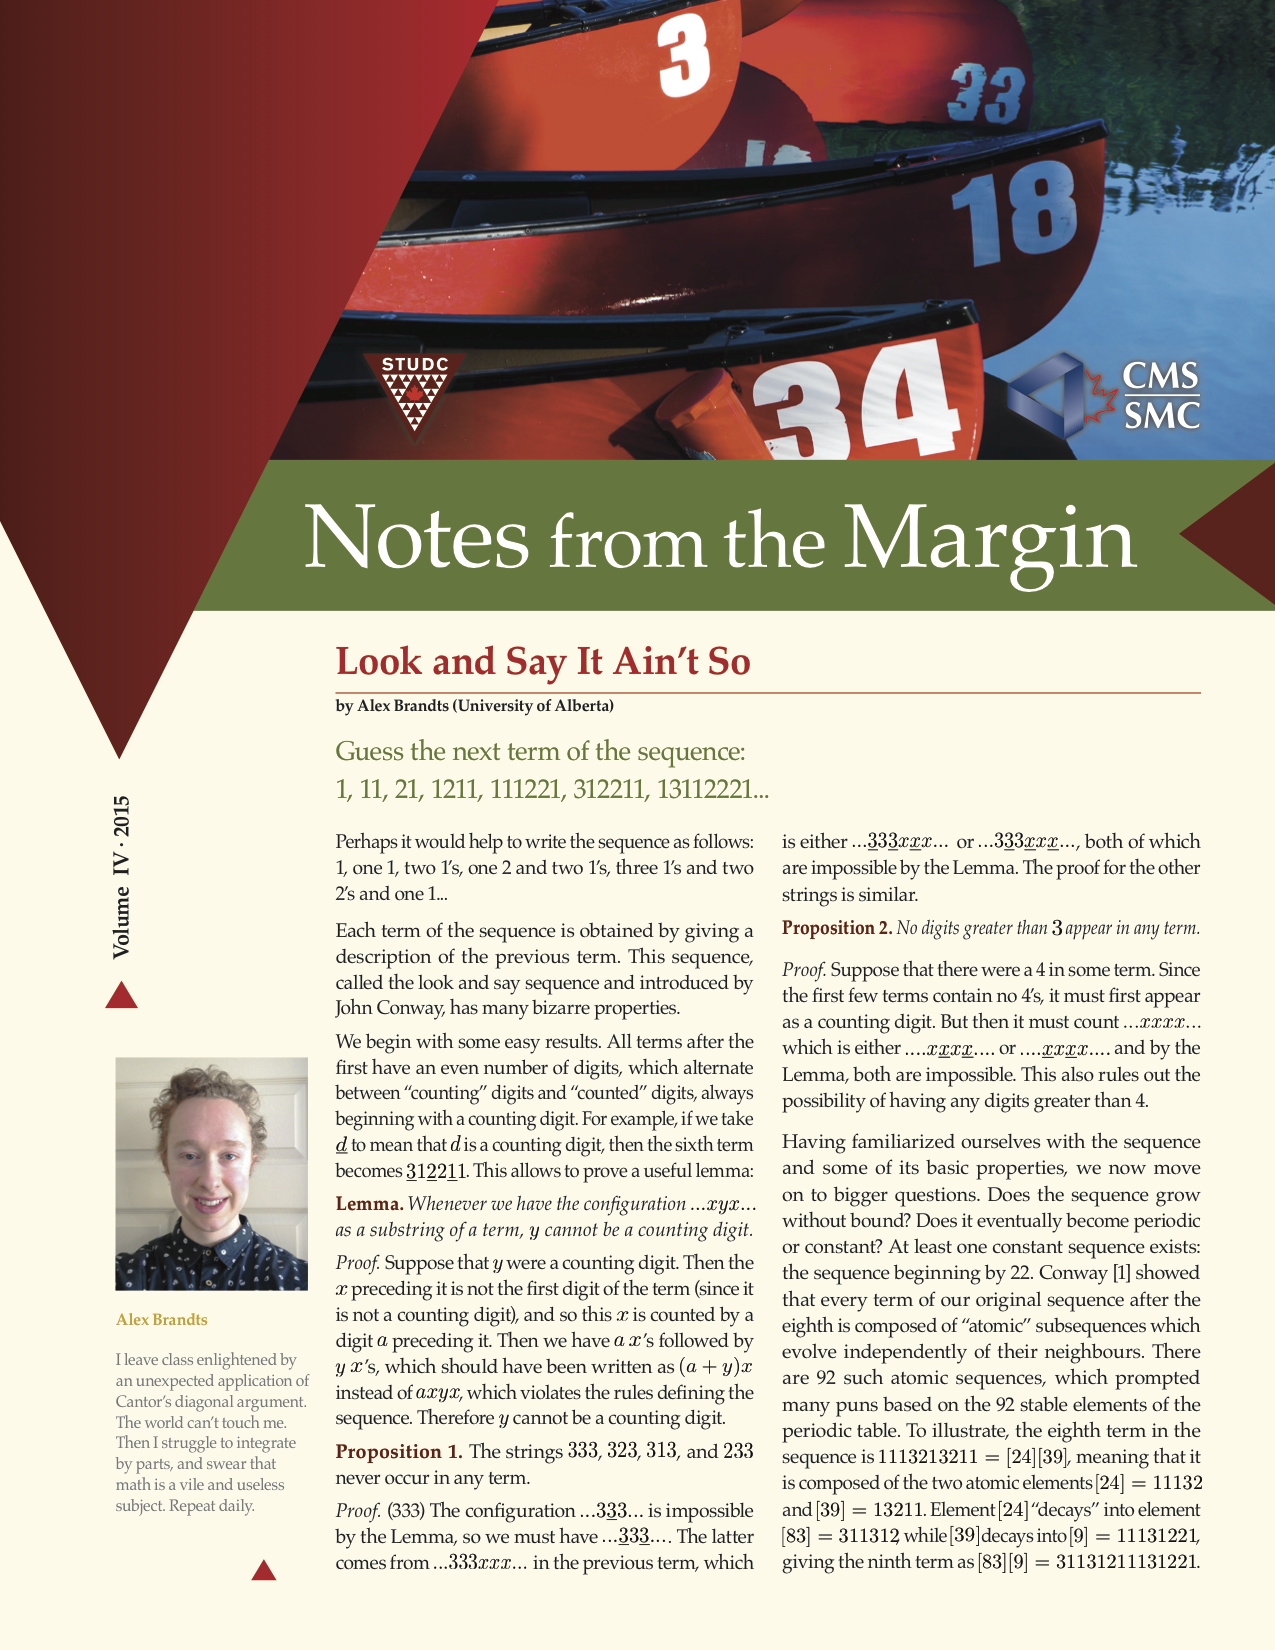 Notes from the Margin IX